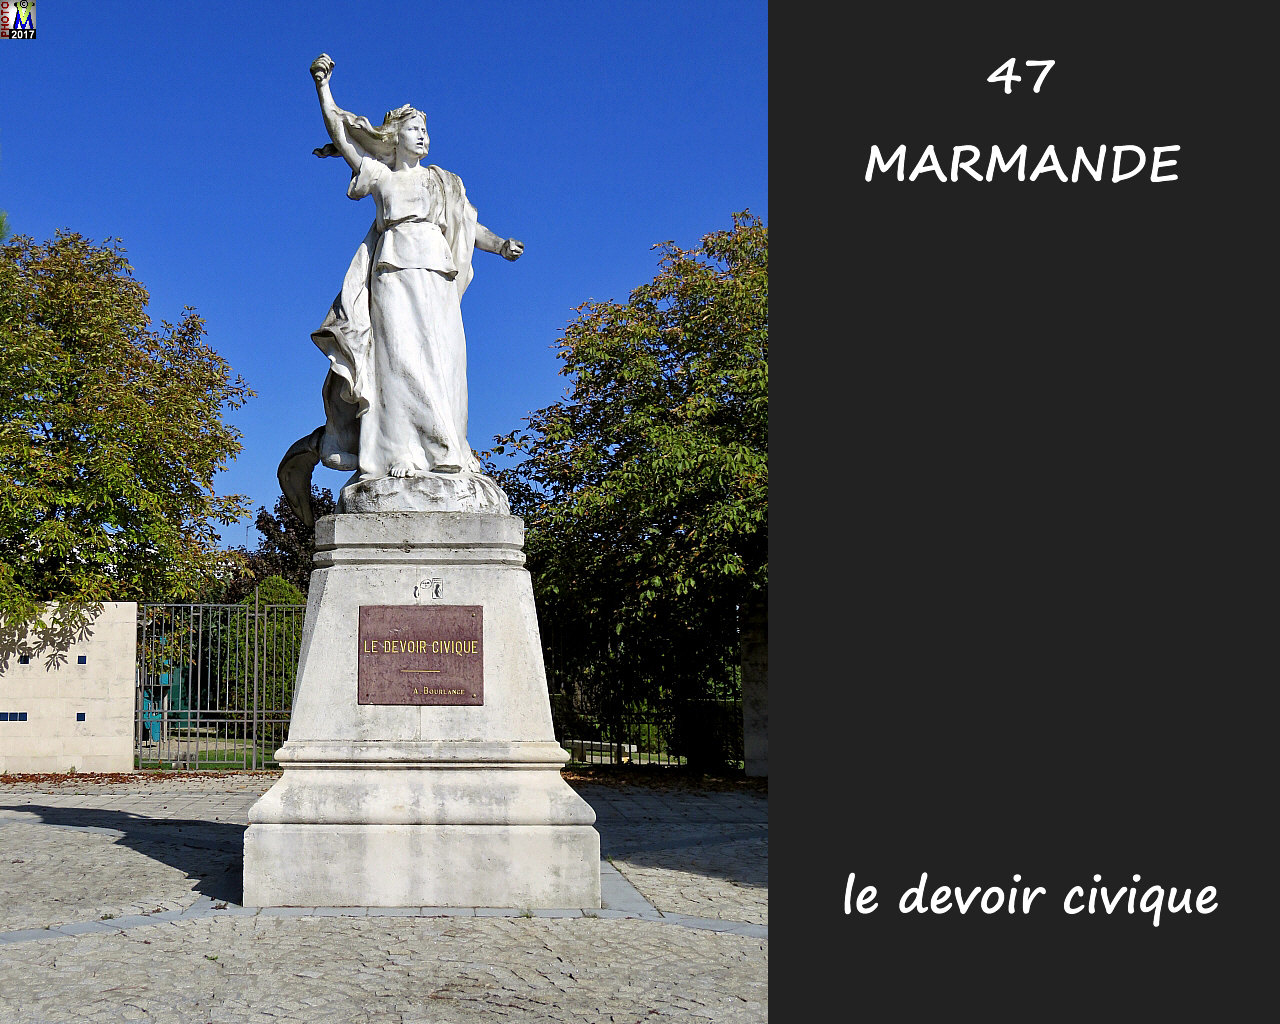 47MARMANDE_devoir_1000.jpg